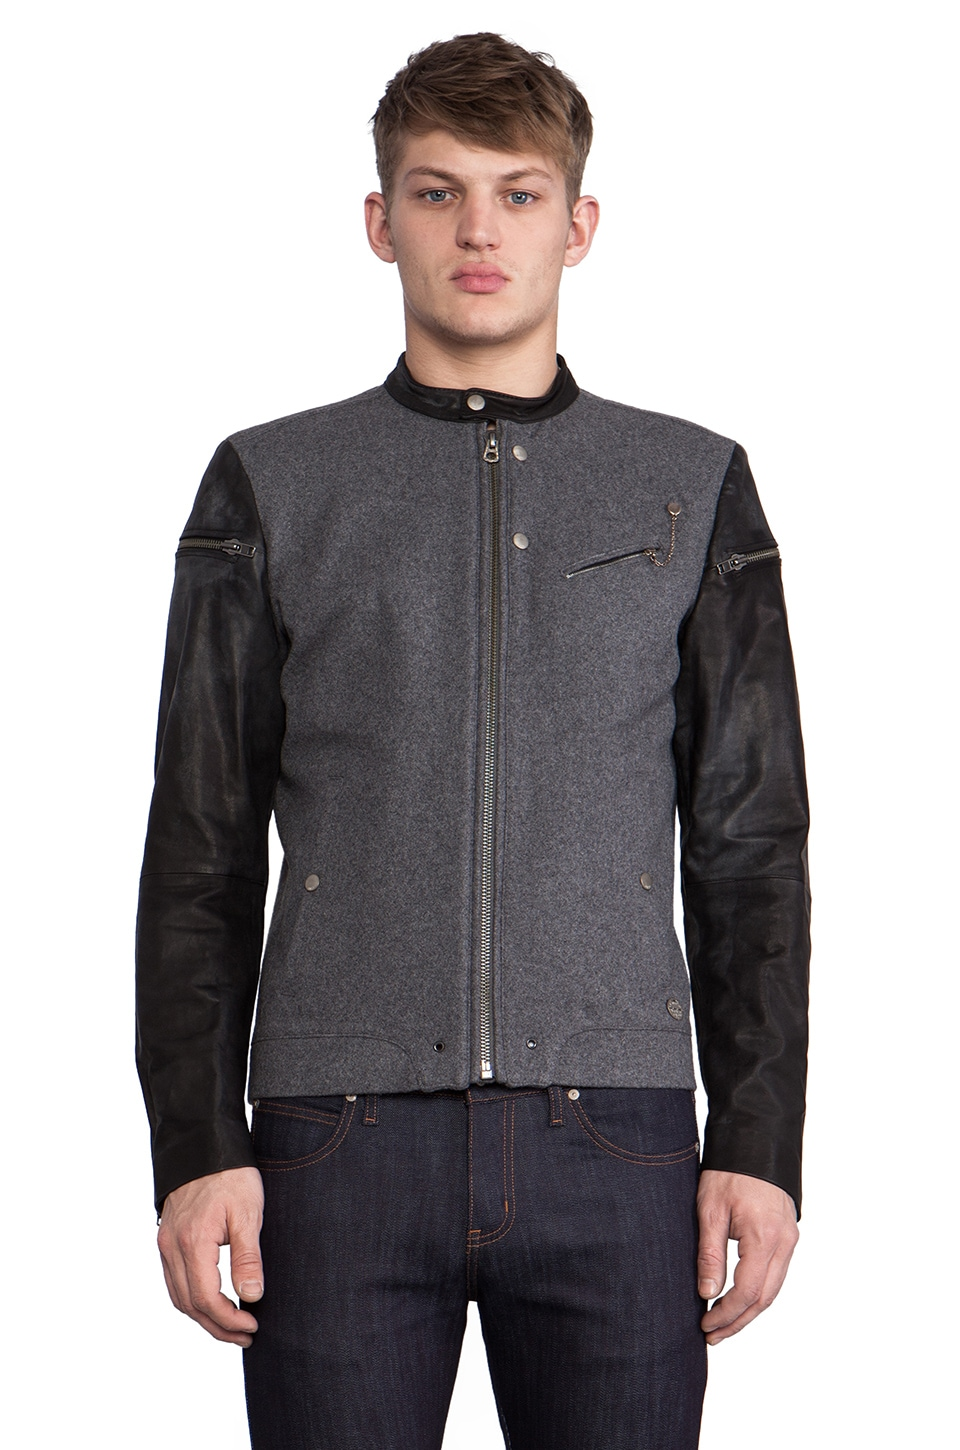 Diesel Baselt Moto Jacket w/Leather Sleeves in Grey